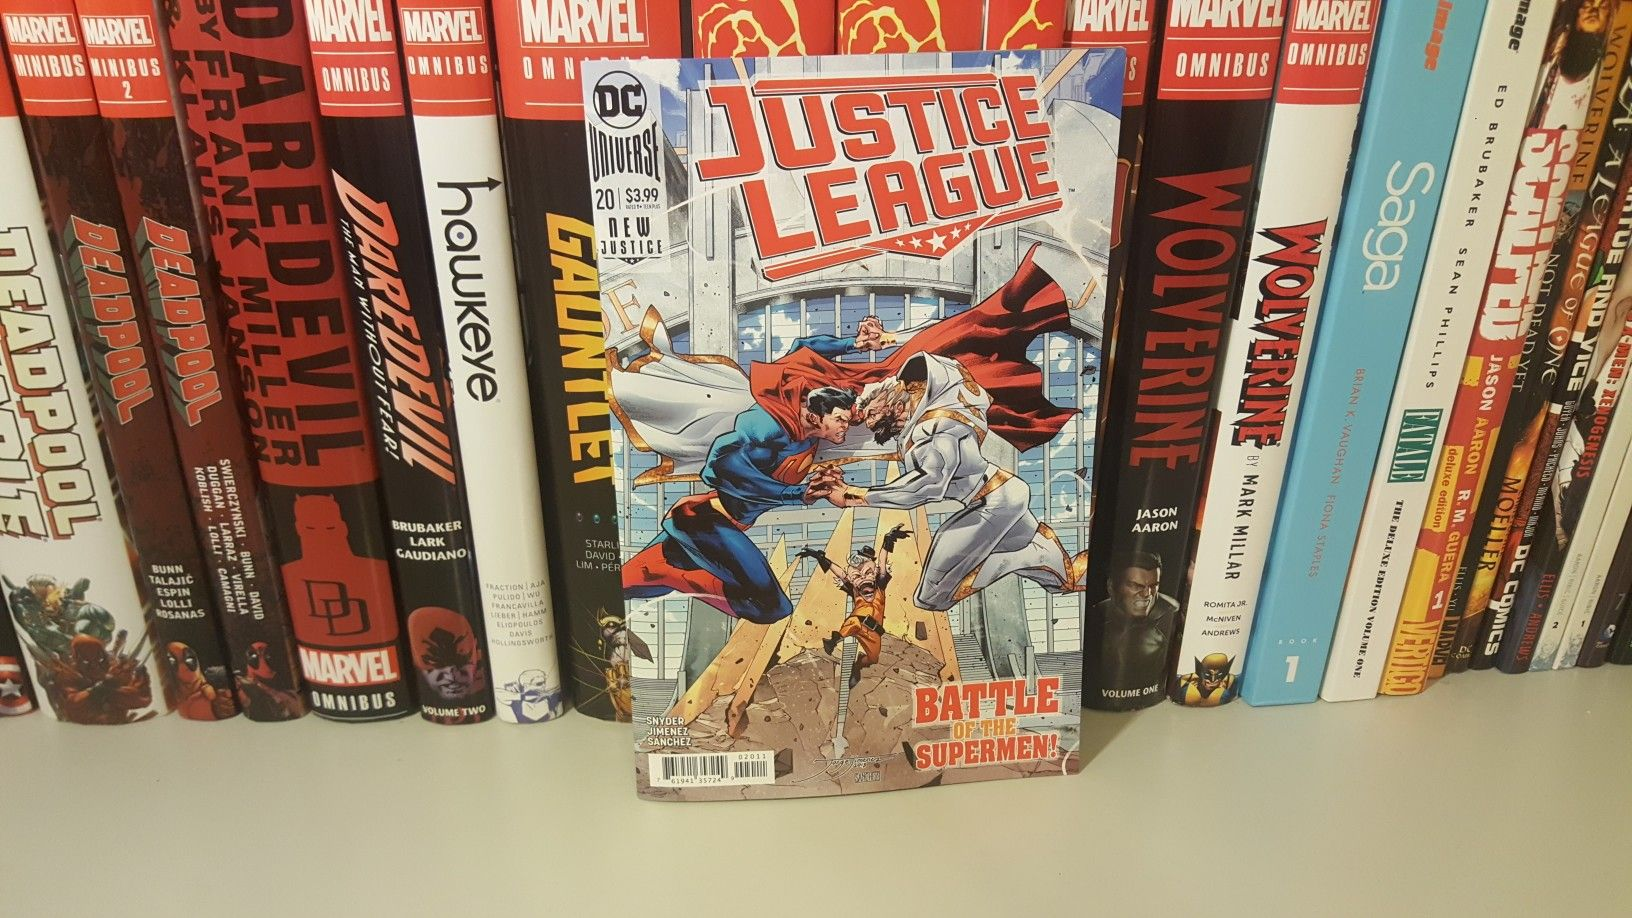 Justice League Vol 4 Issue 20 Overview Video Https M Youtube Com Watch V Ctkgcgchj9k Dccomics Deathstrok Comic Book Collection Comic Collection Deathstroke